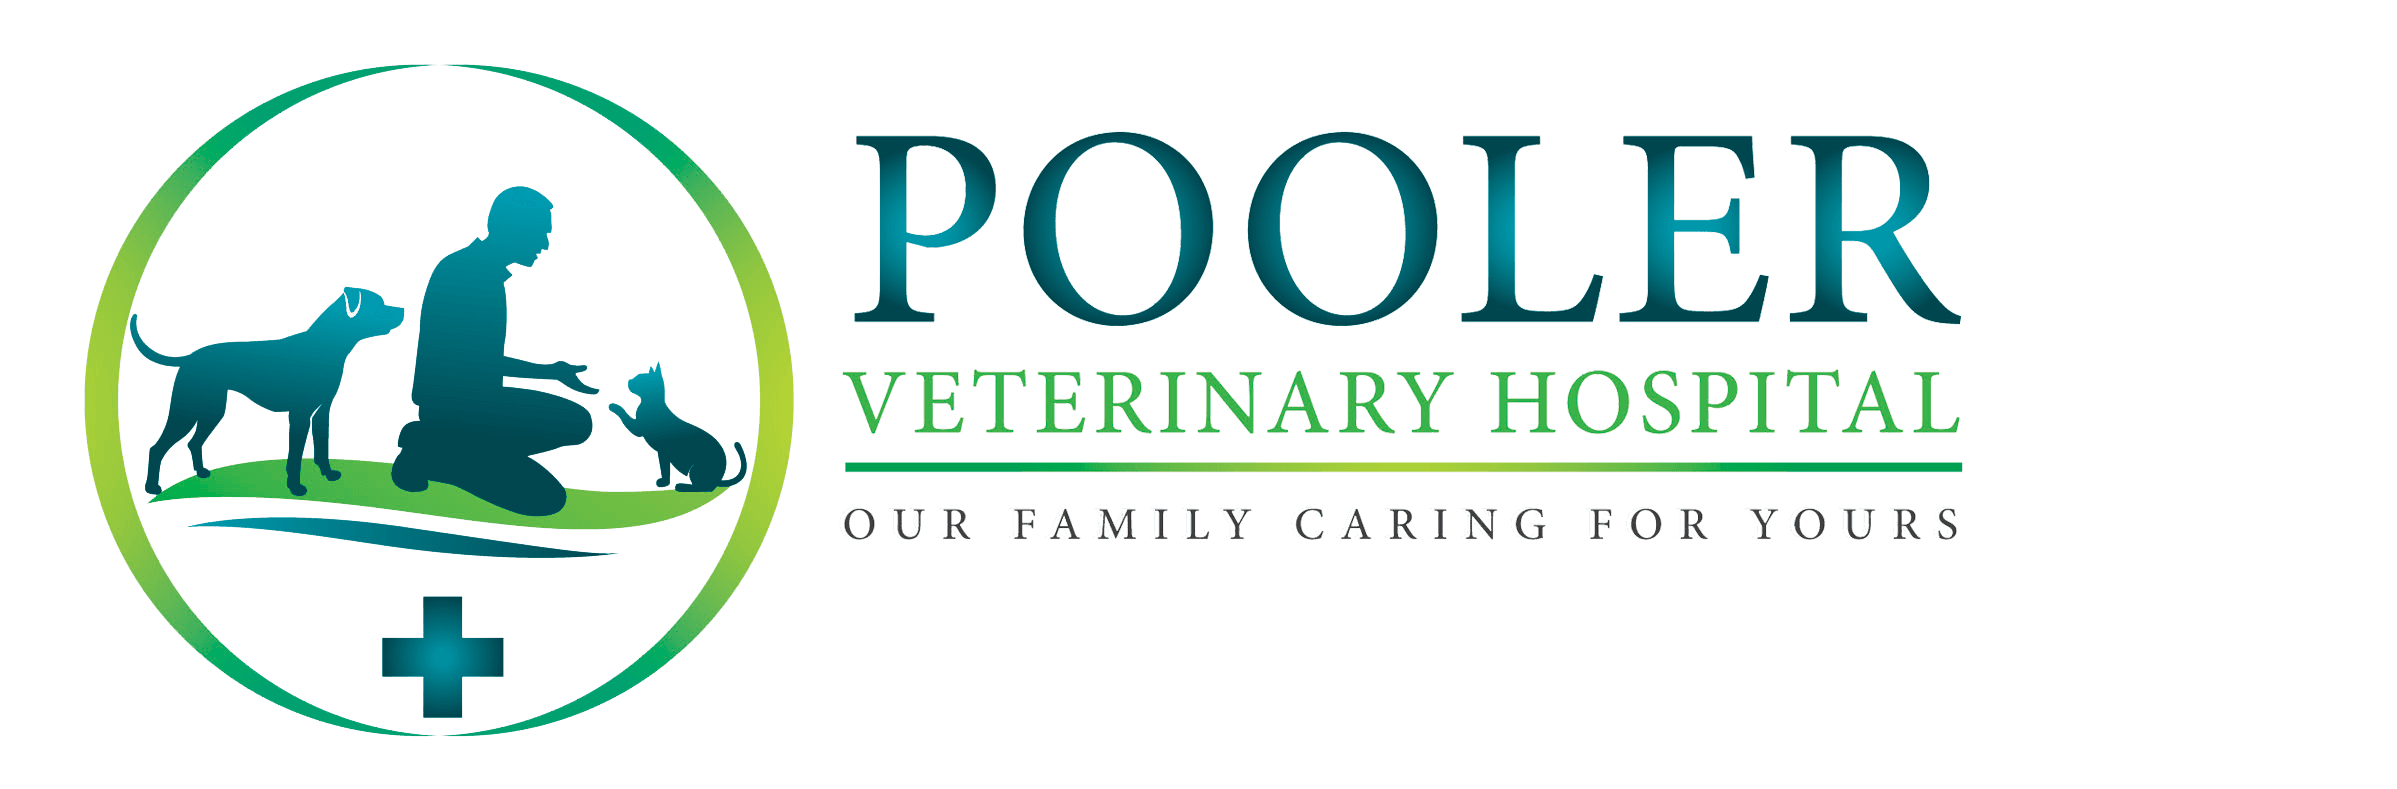 Veterinary Hospital Pooler, GA